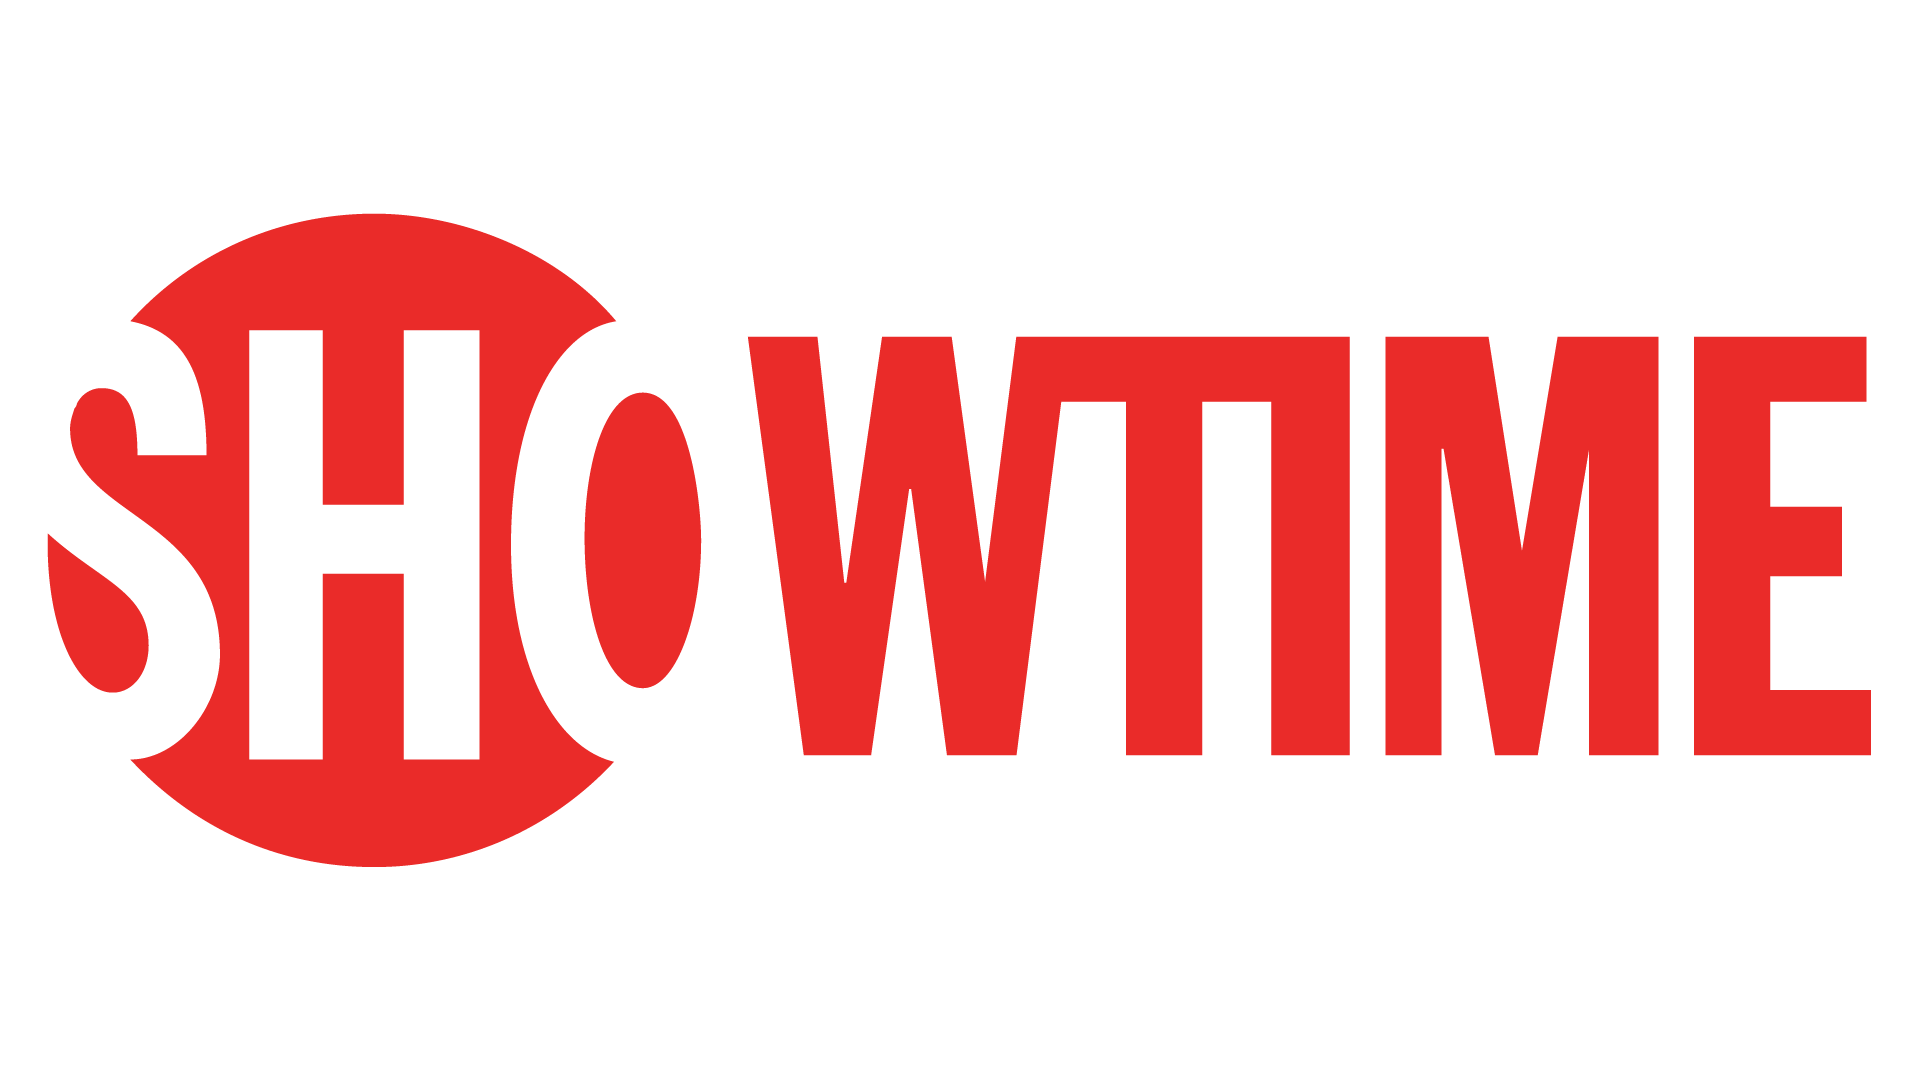 Showtime-01.png